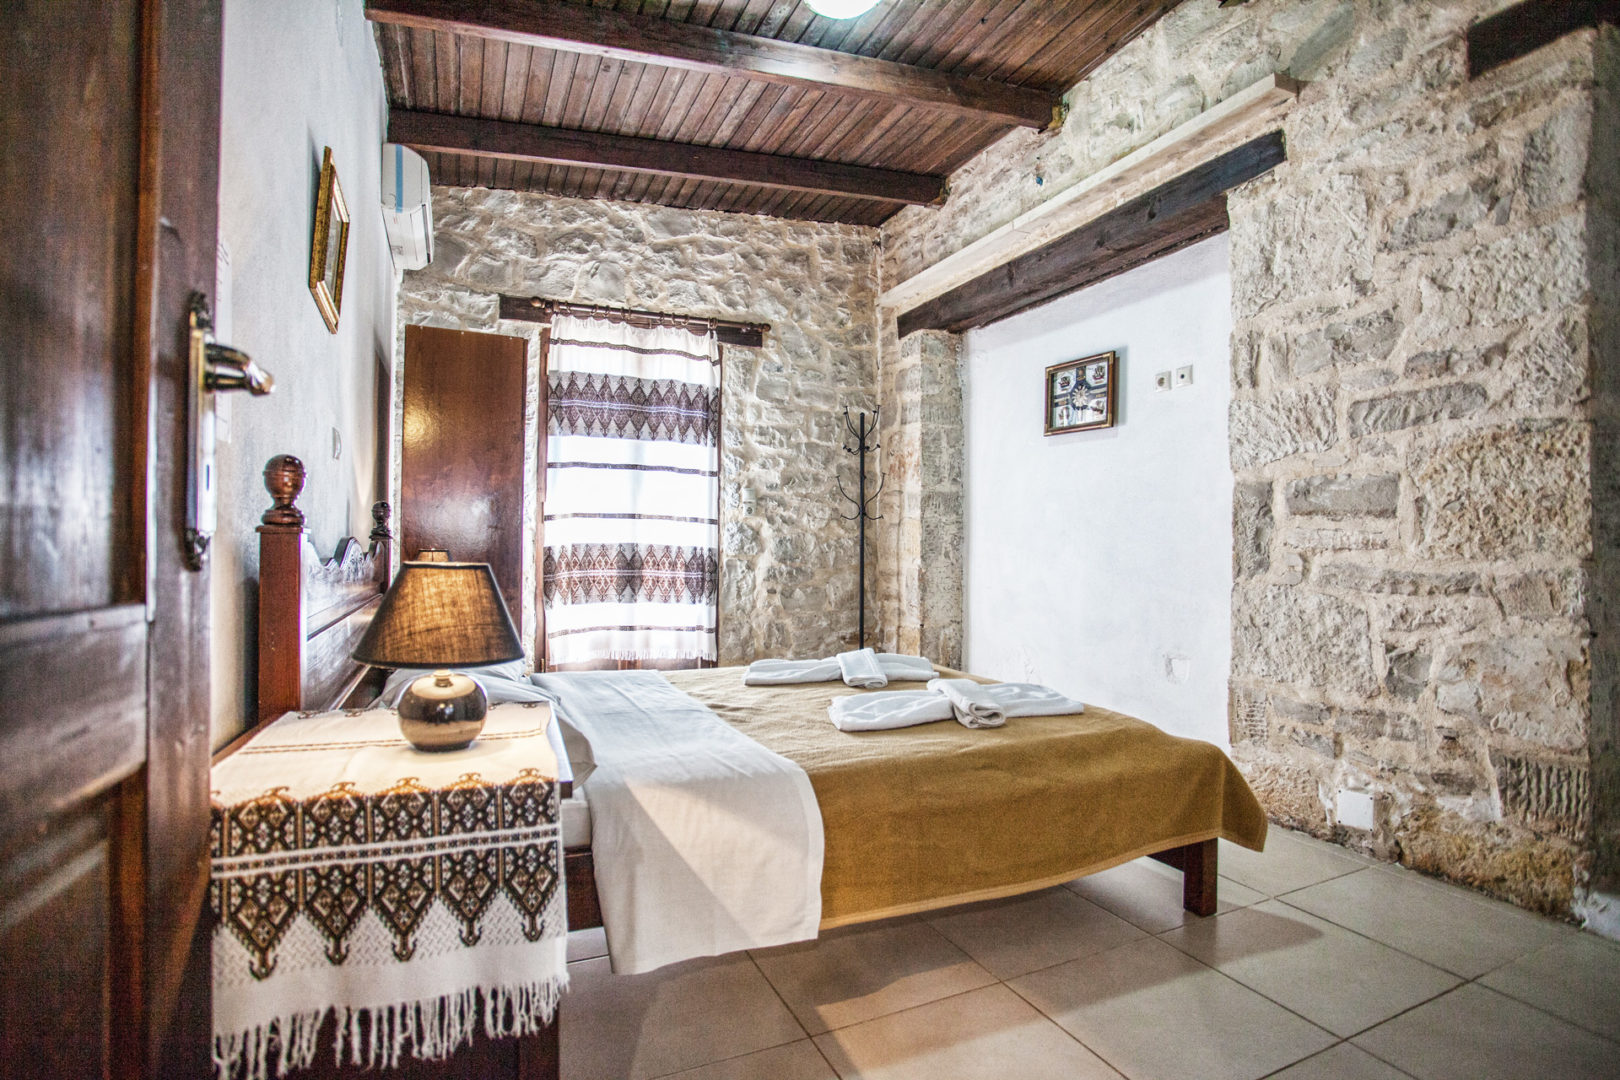 Accommodation in Bali Crete - 2-Bedroom Apartment 2 - Stone Village